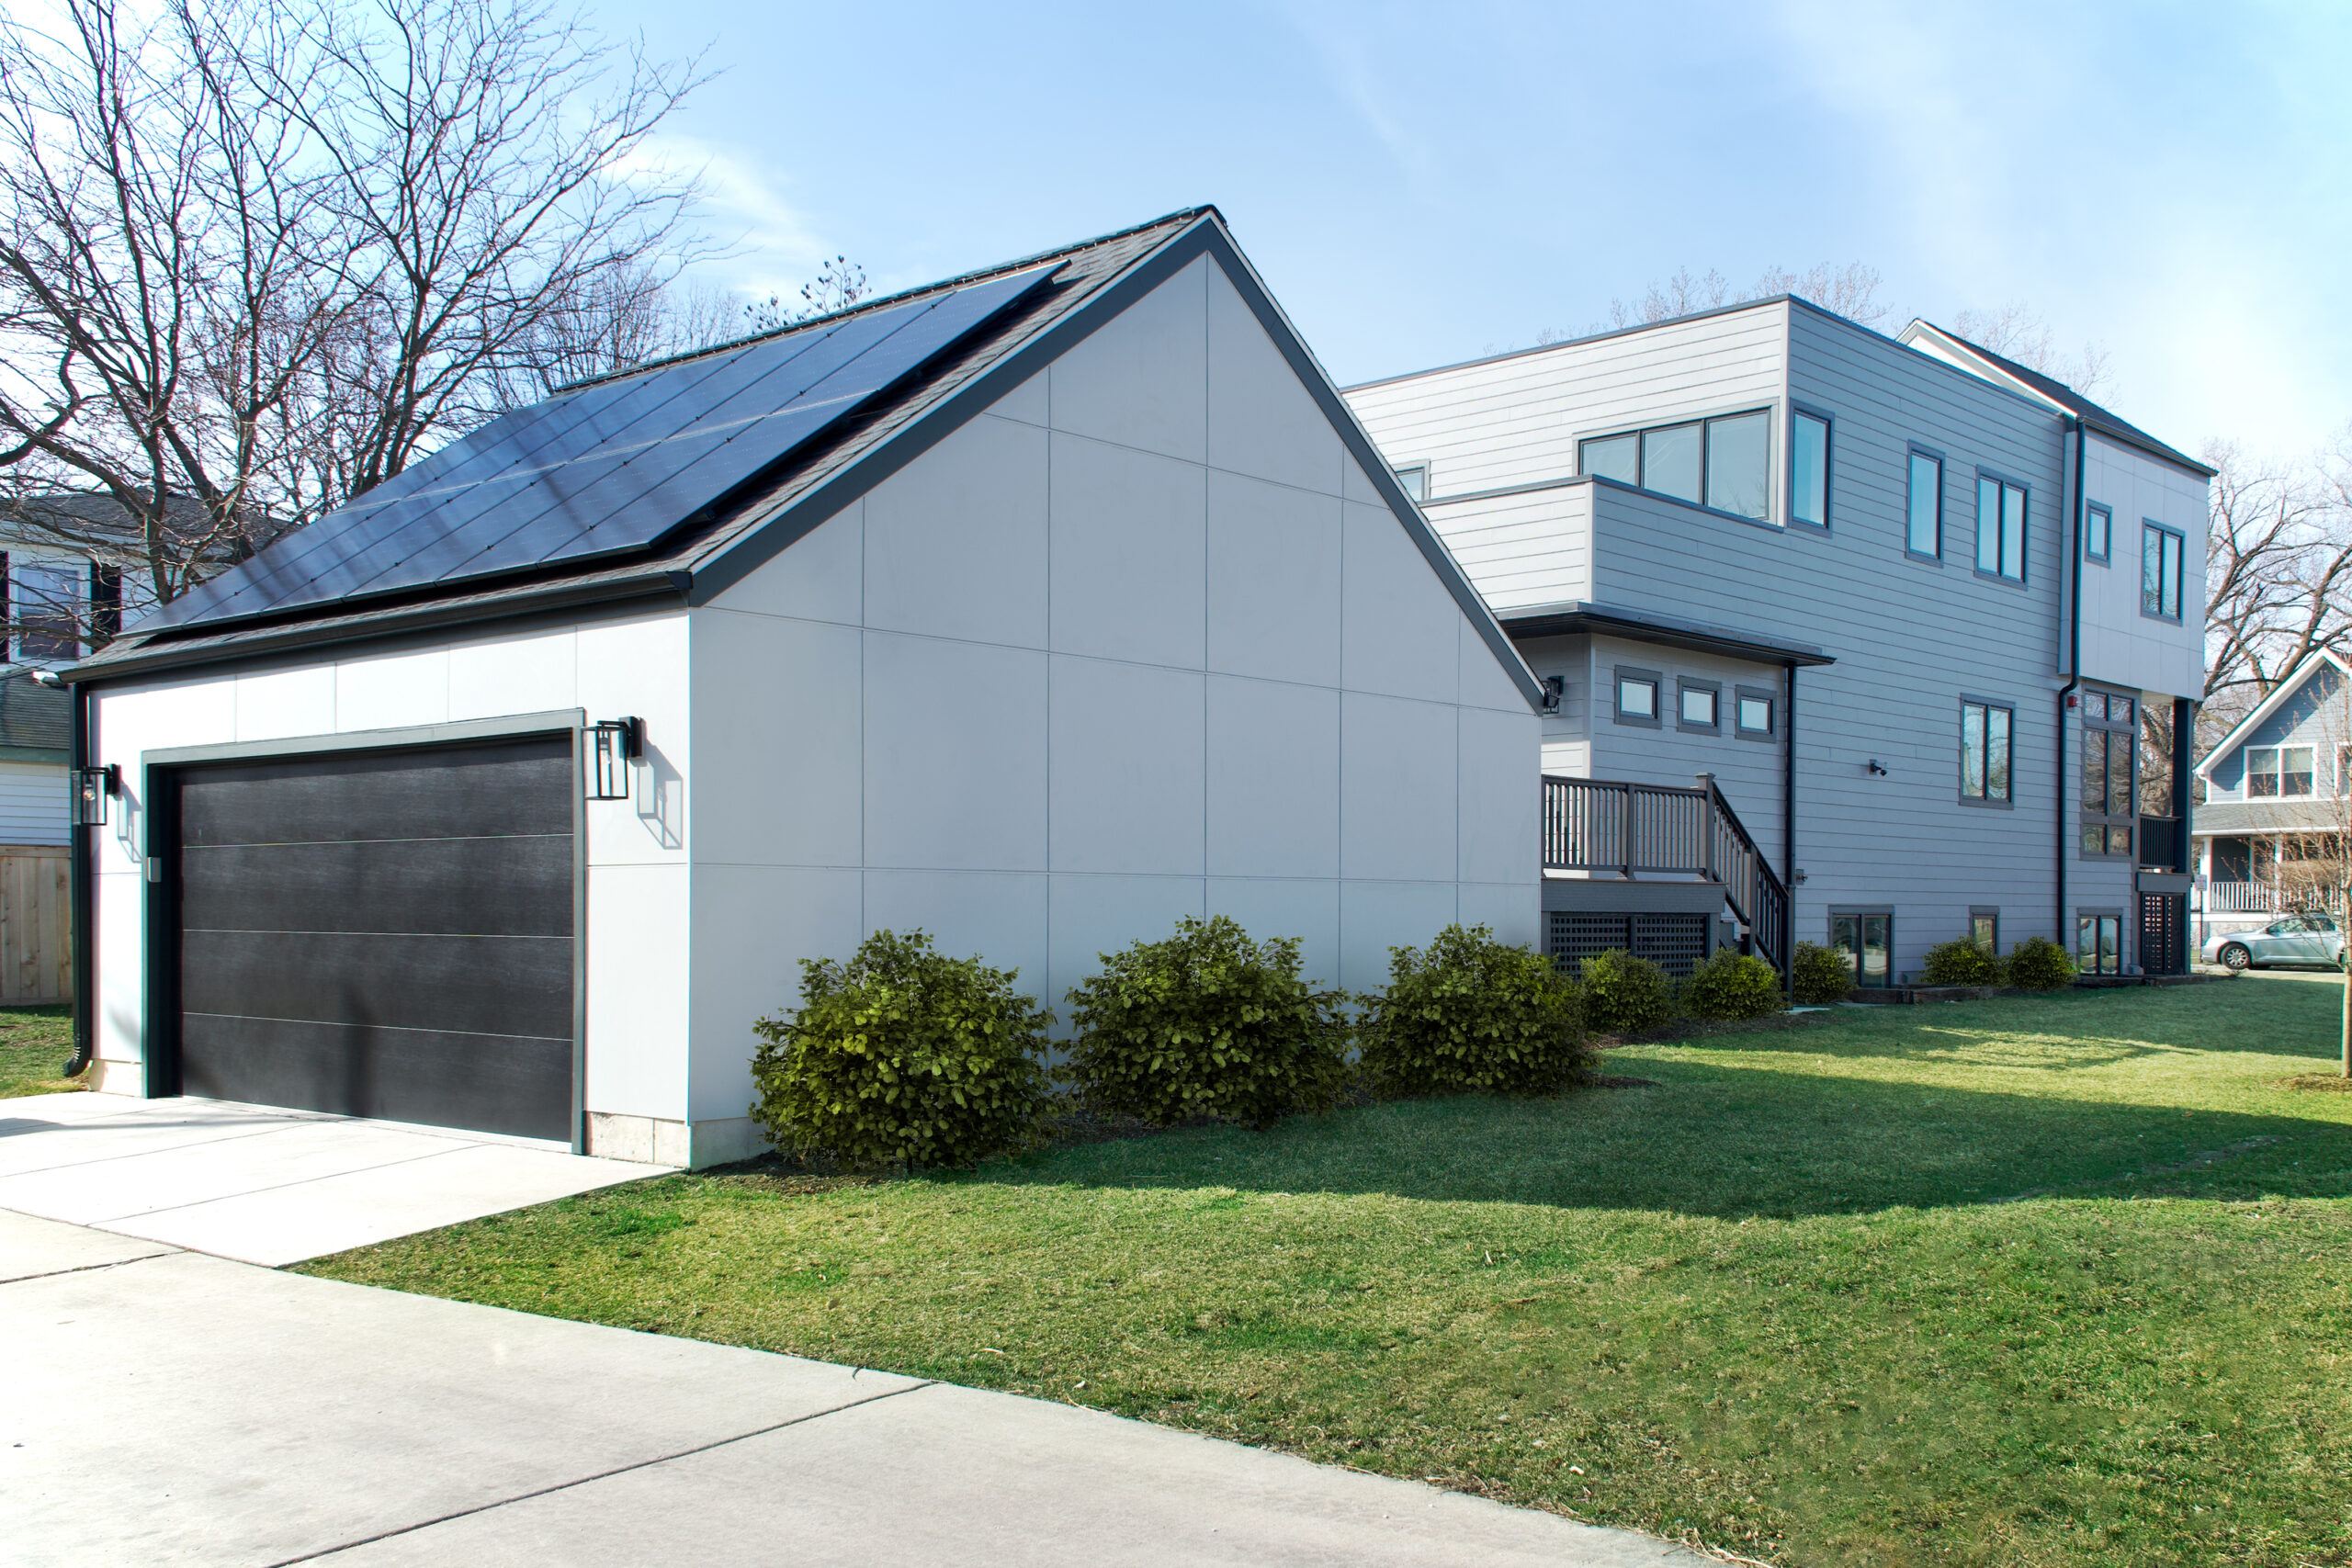 Garage View of Modern All Electric Home with Solar Panels on Roof